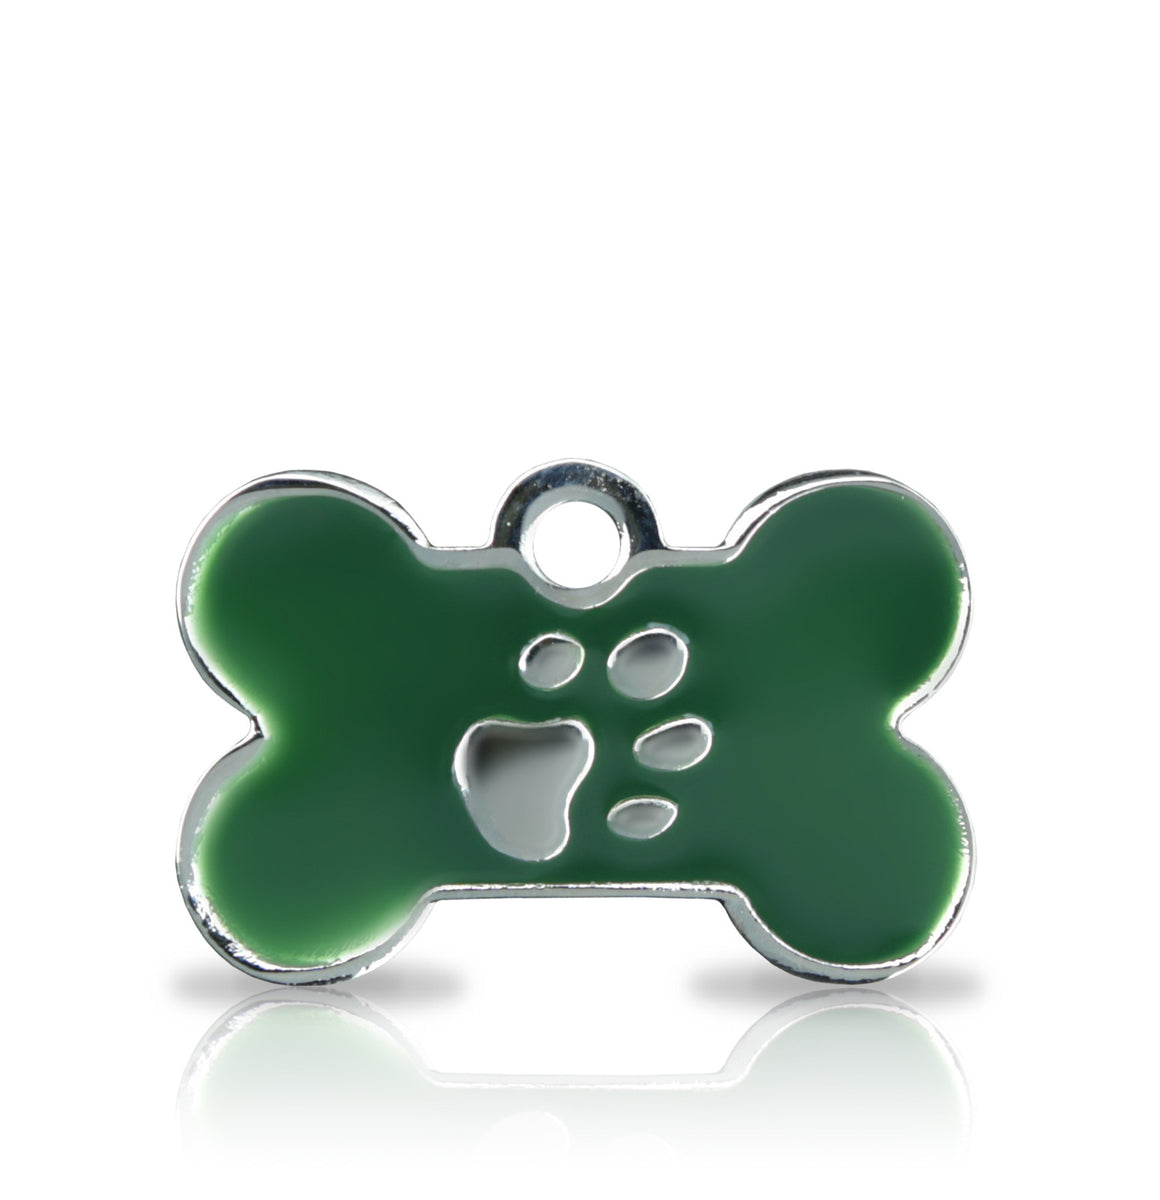 TaggIT Elegance Green & Silver Small Bone Dog ID Tag